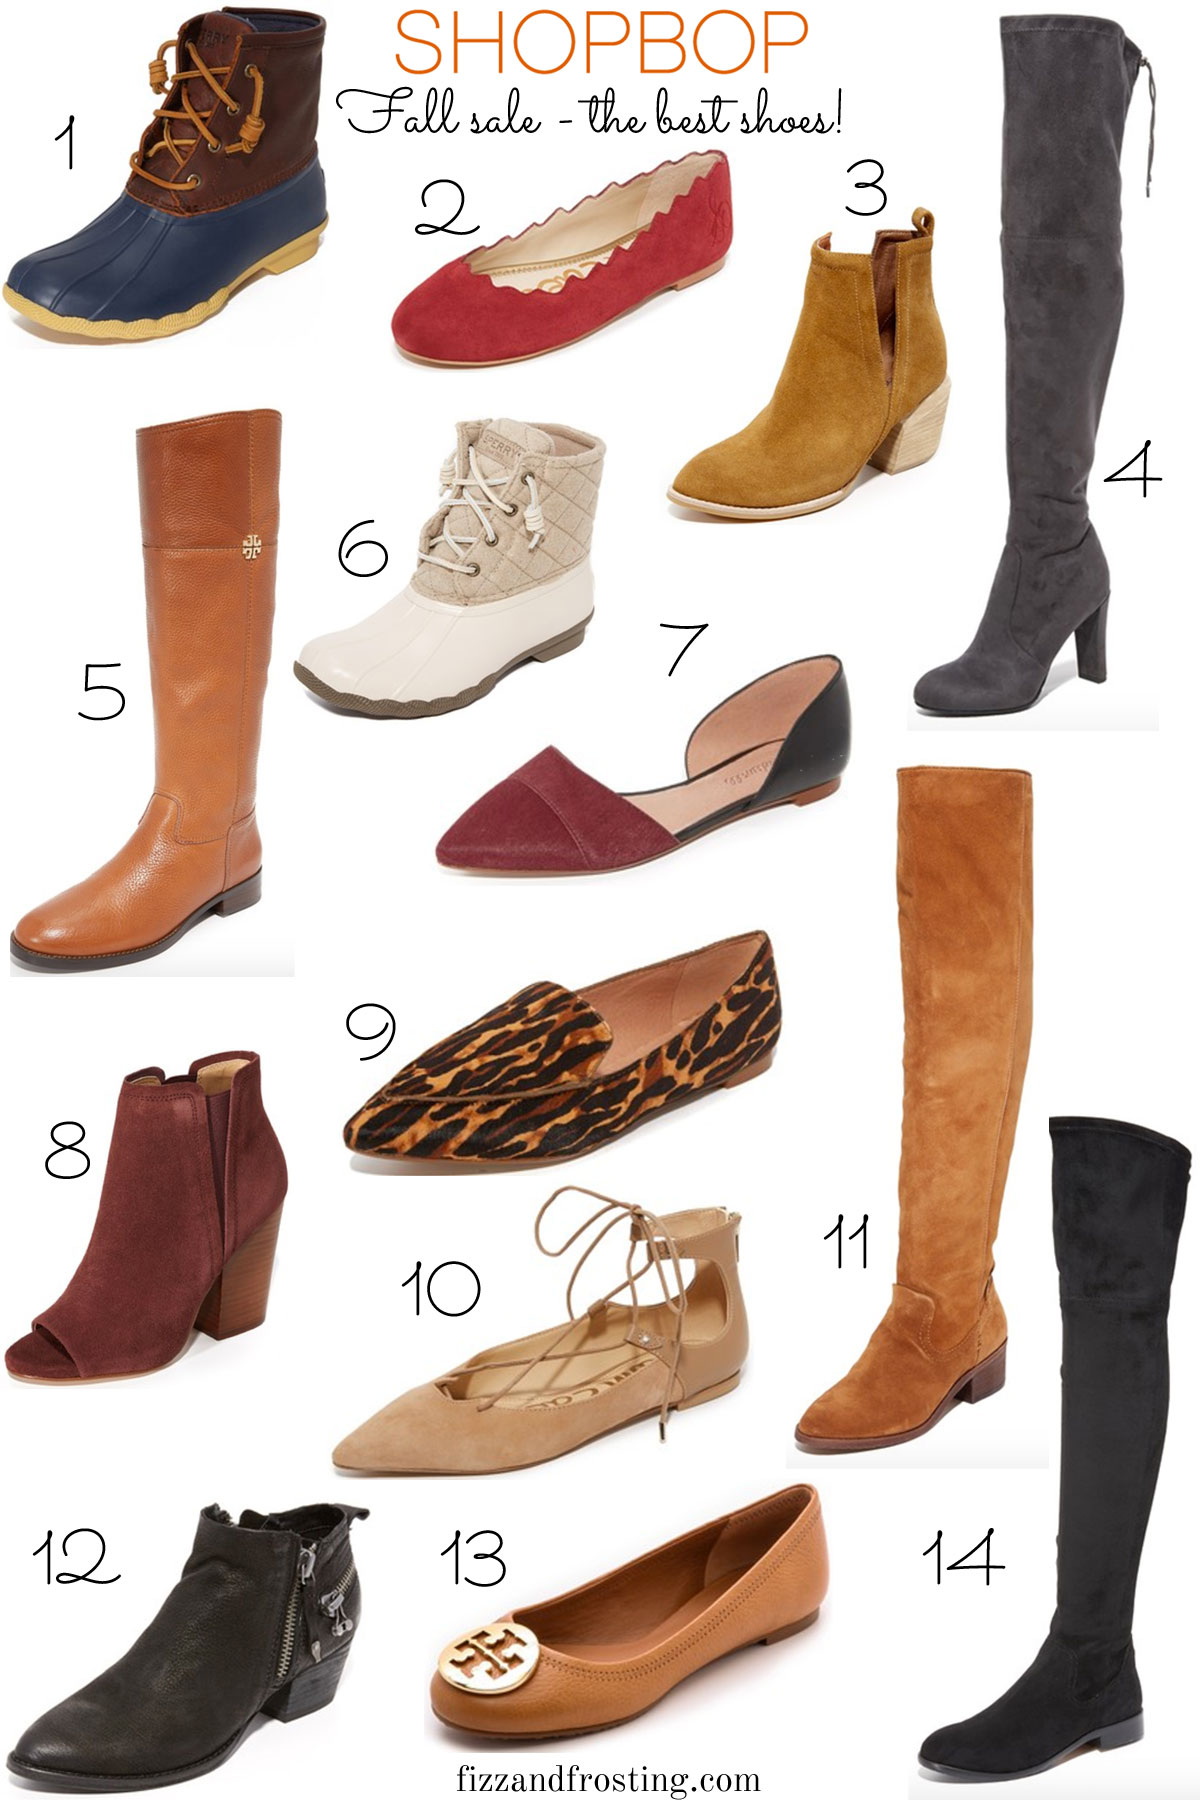 the best of fall shopbop sale - shoes | www.fizzandfrosting.com